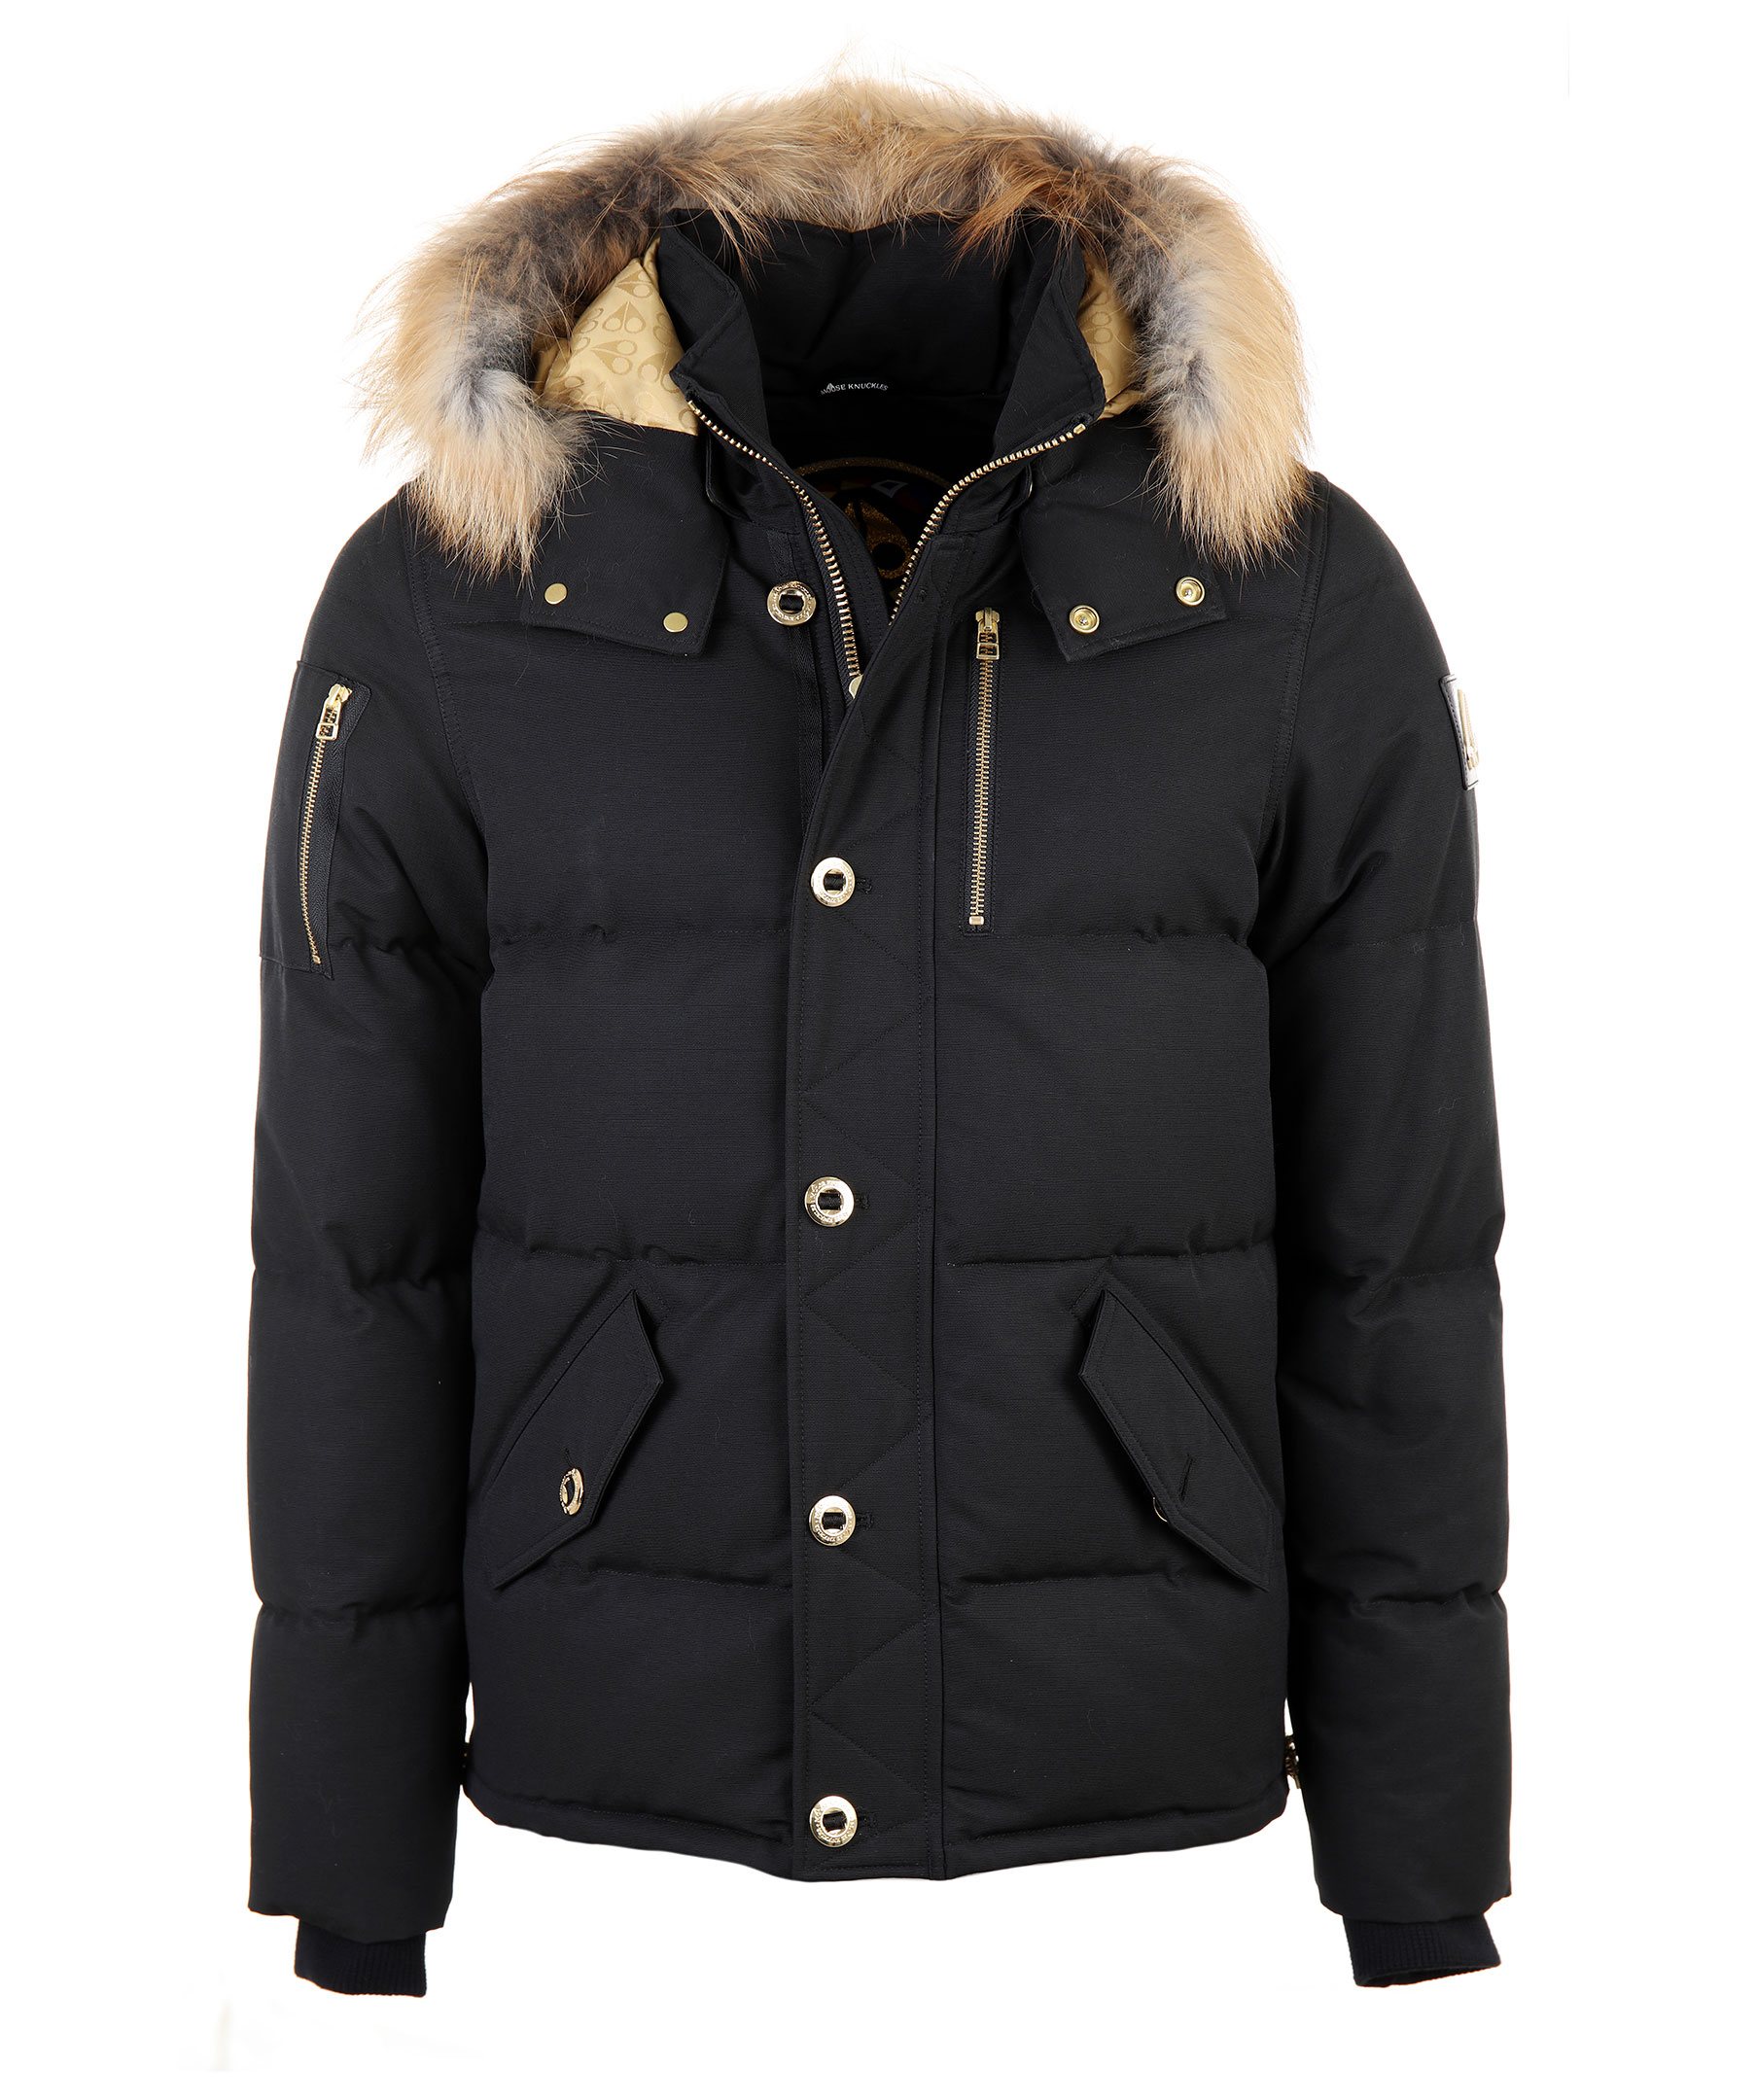 Black Forestville Jacket  Moose Knuckles  Dunjackor